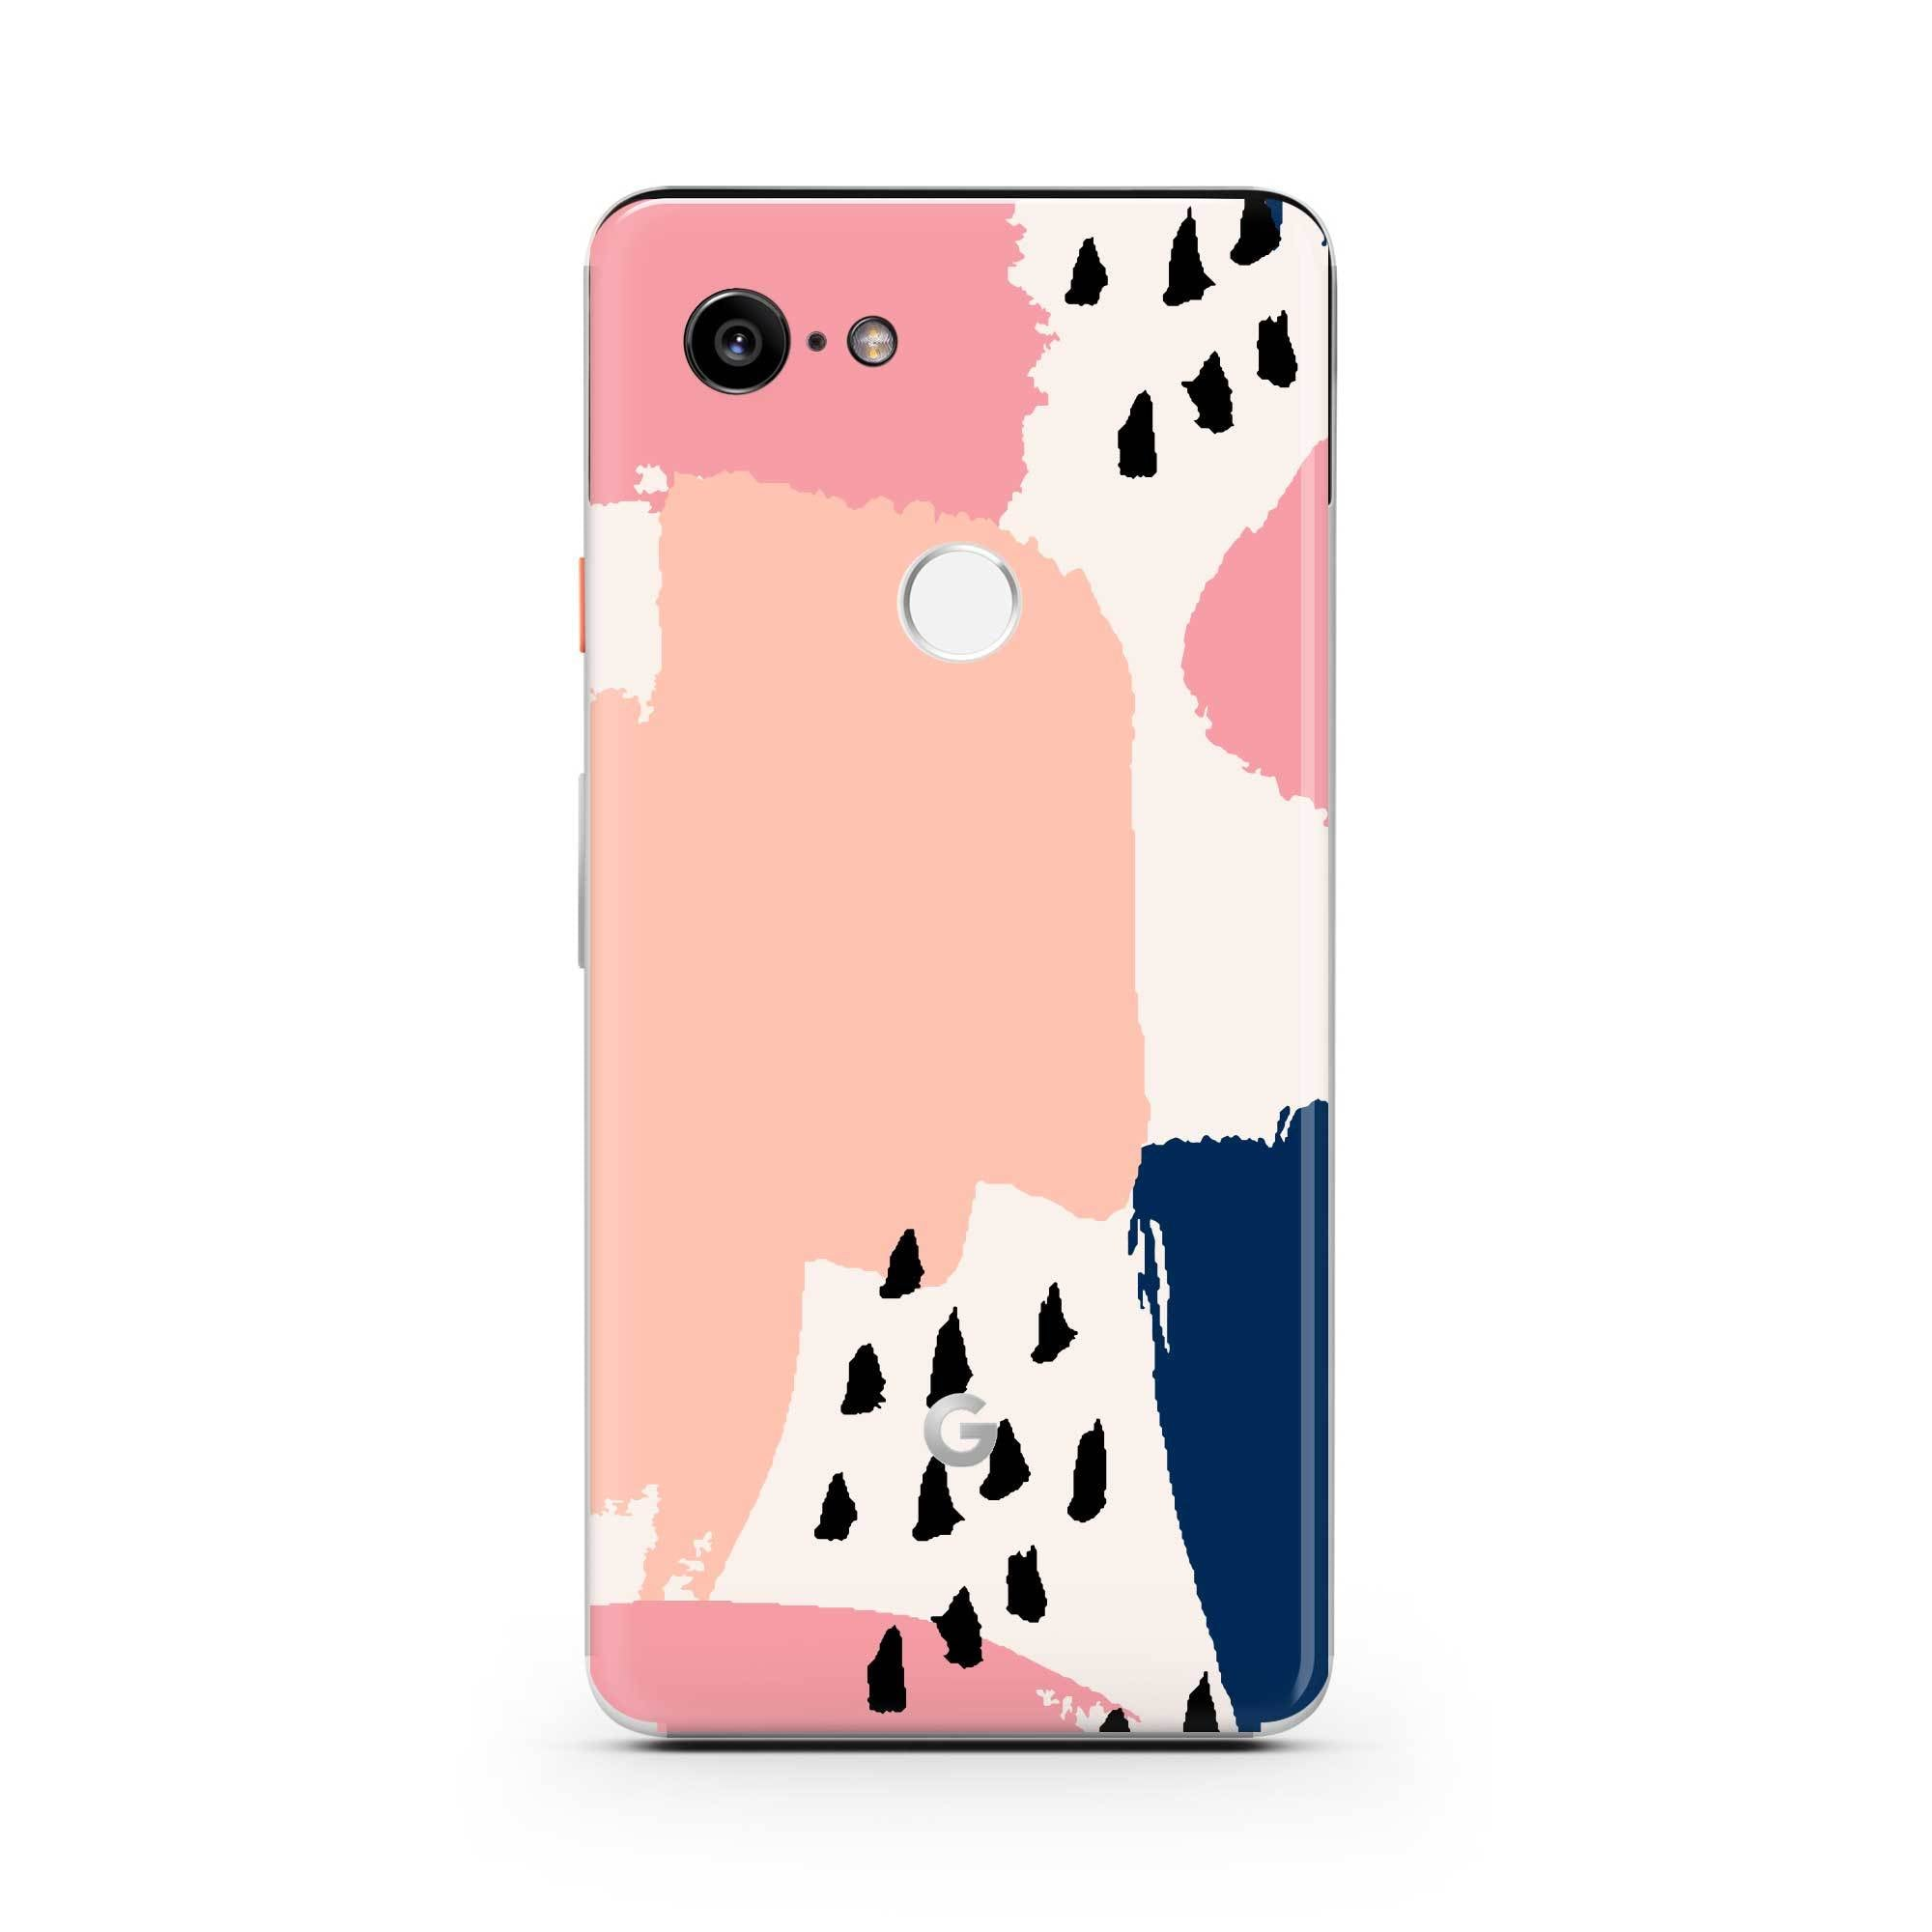 Miami Vice Pixel 3 Skin + Case